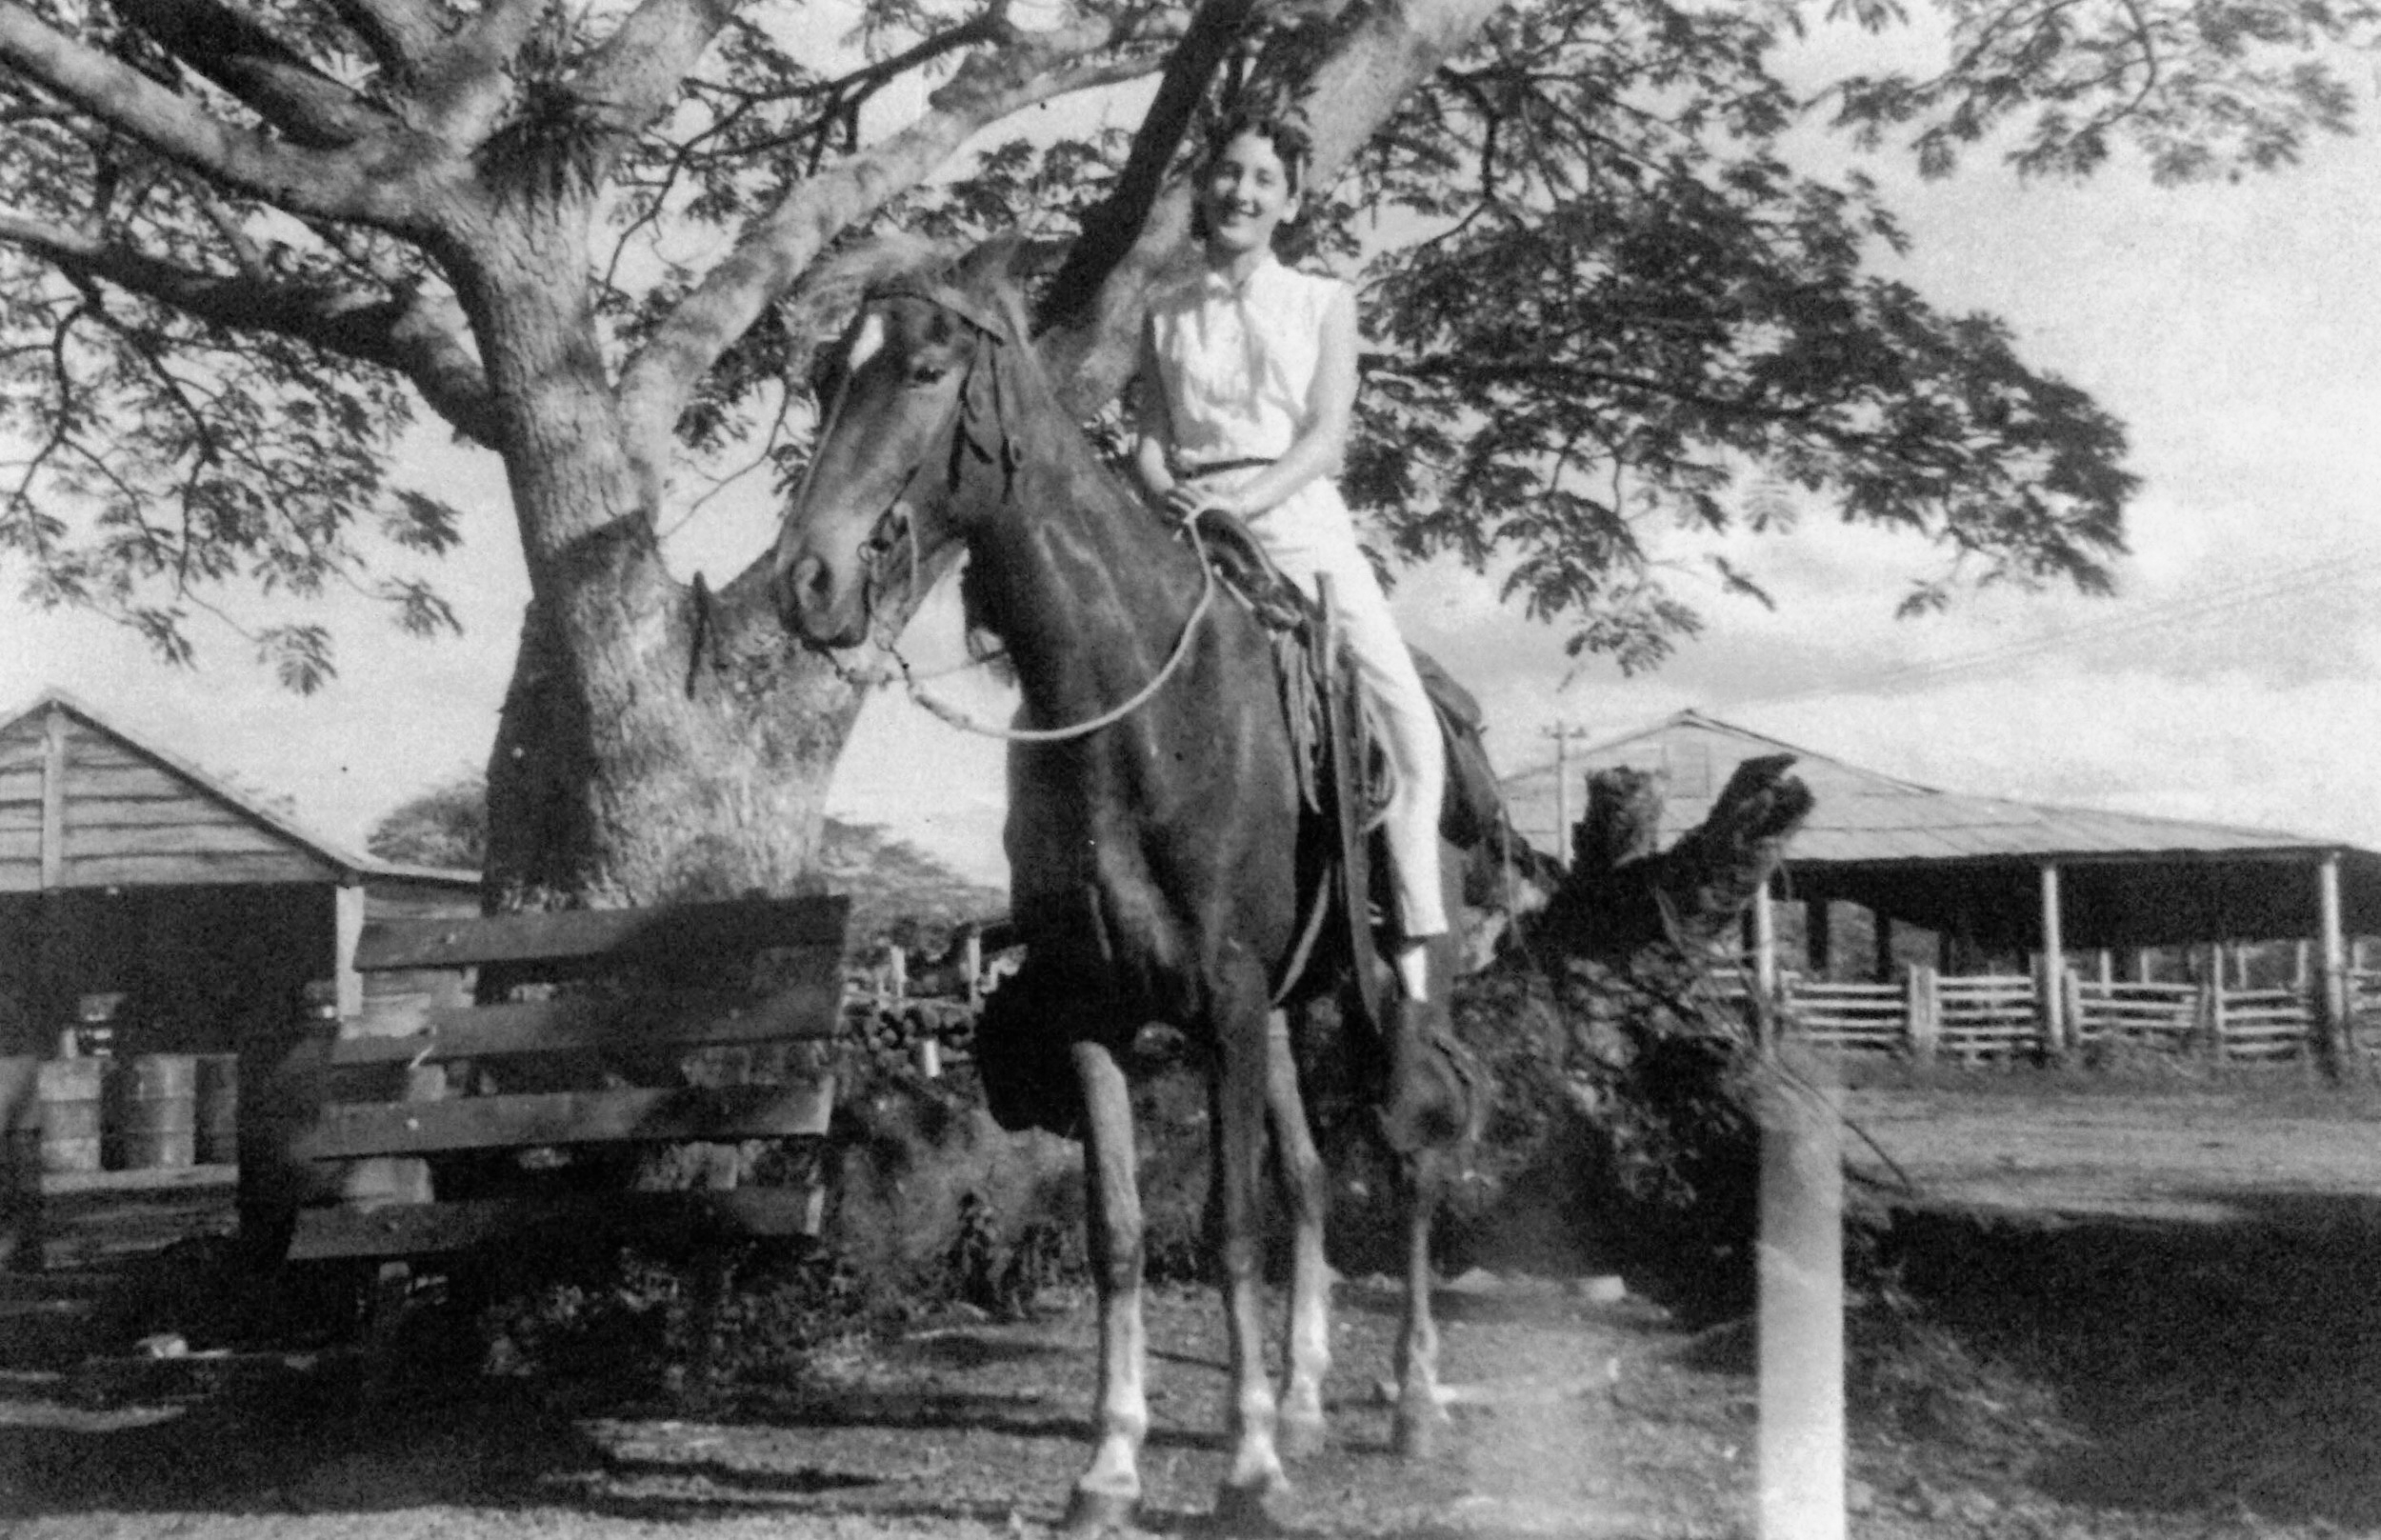 The photo of my grandmother on her horse with one of the three ceiba trees landmarks in the background